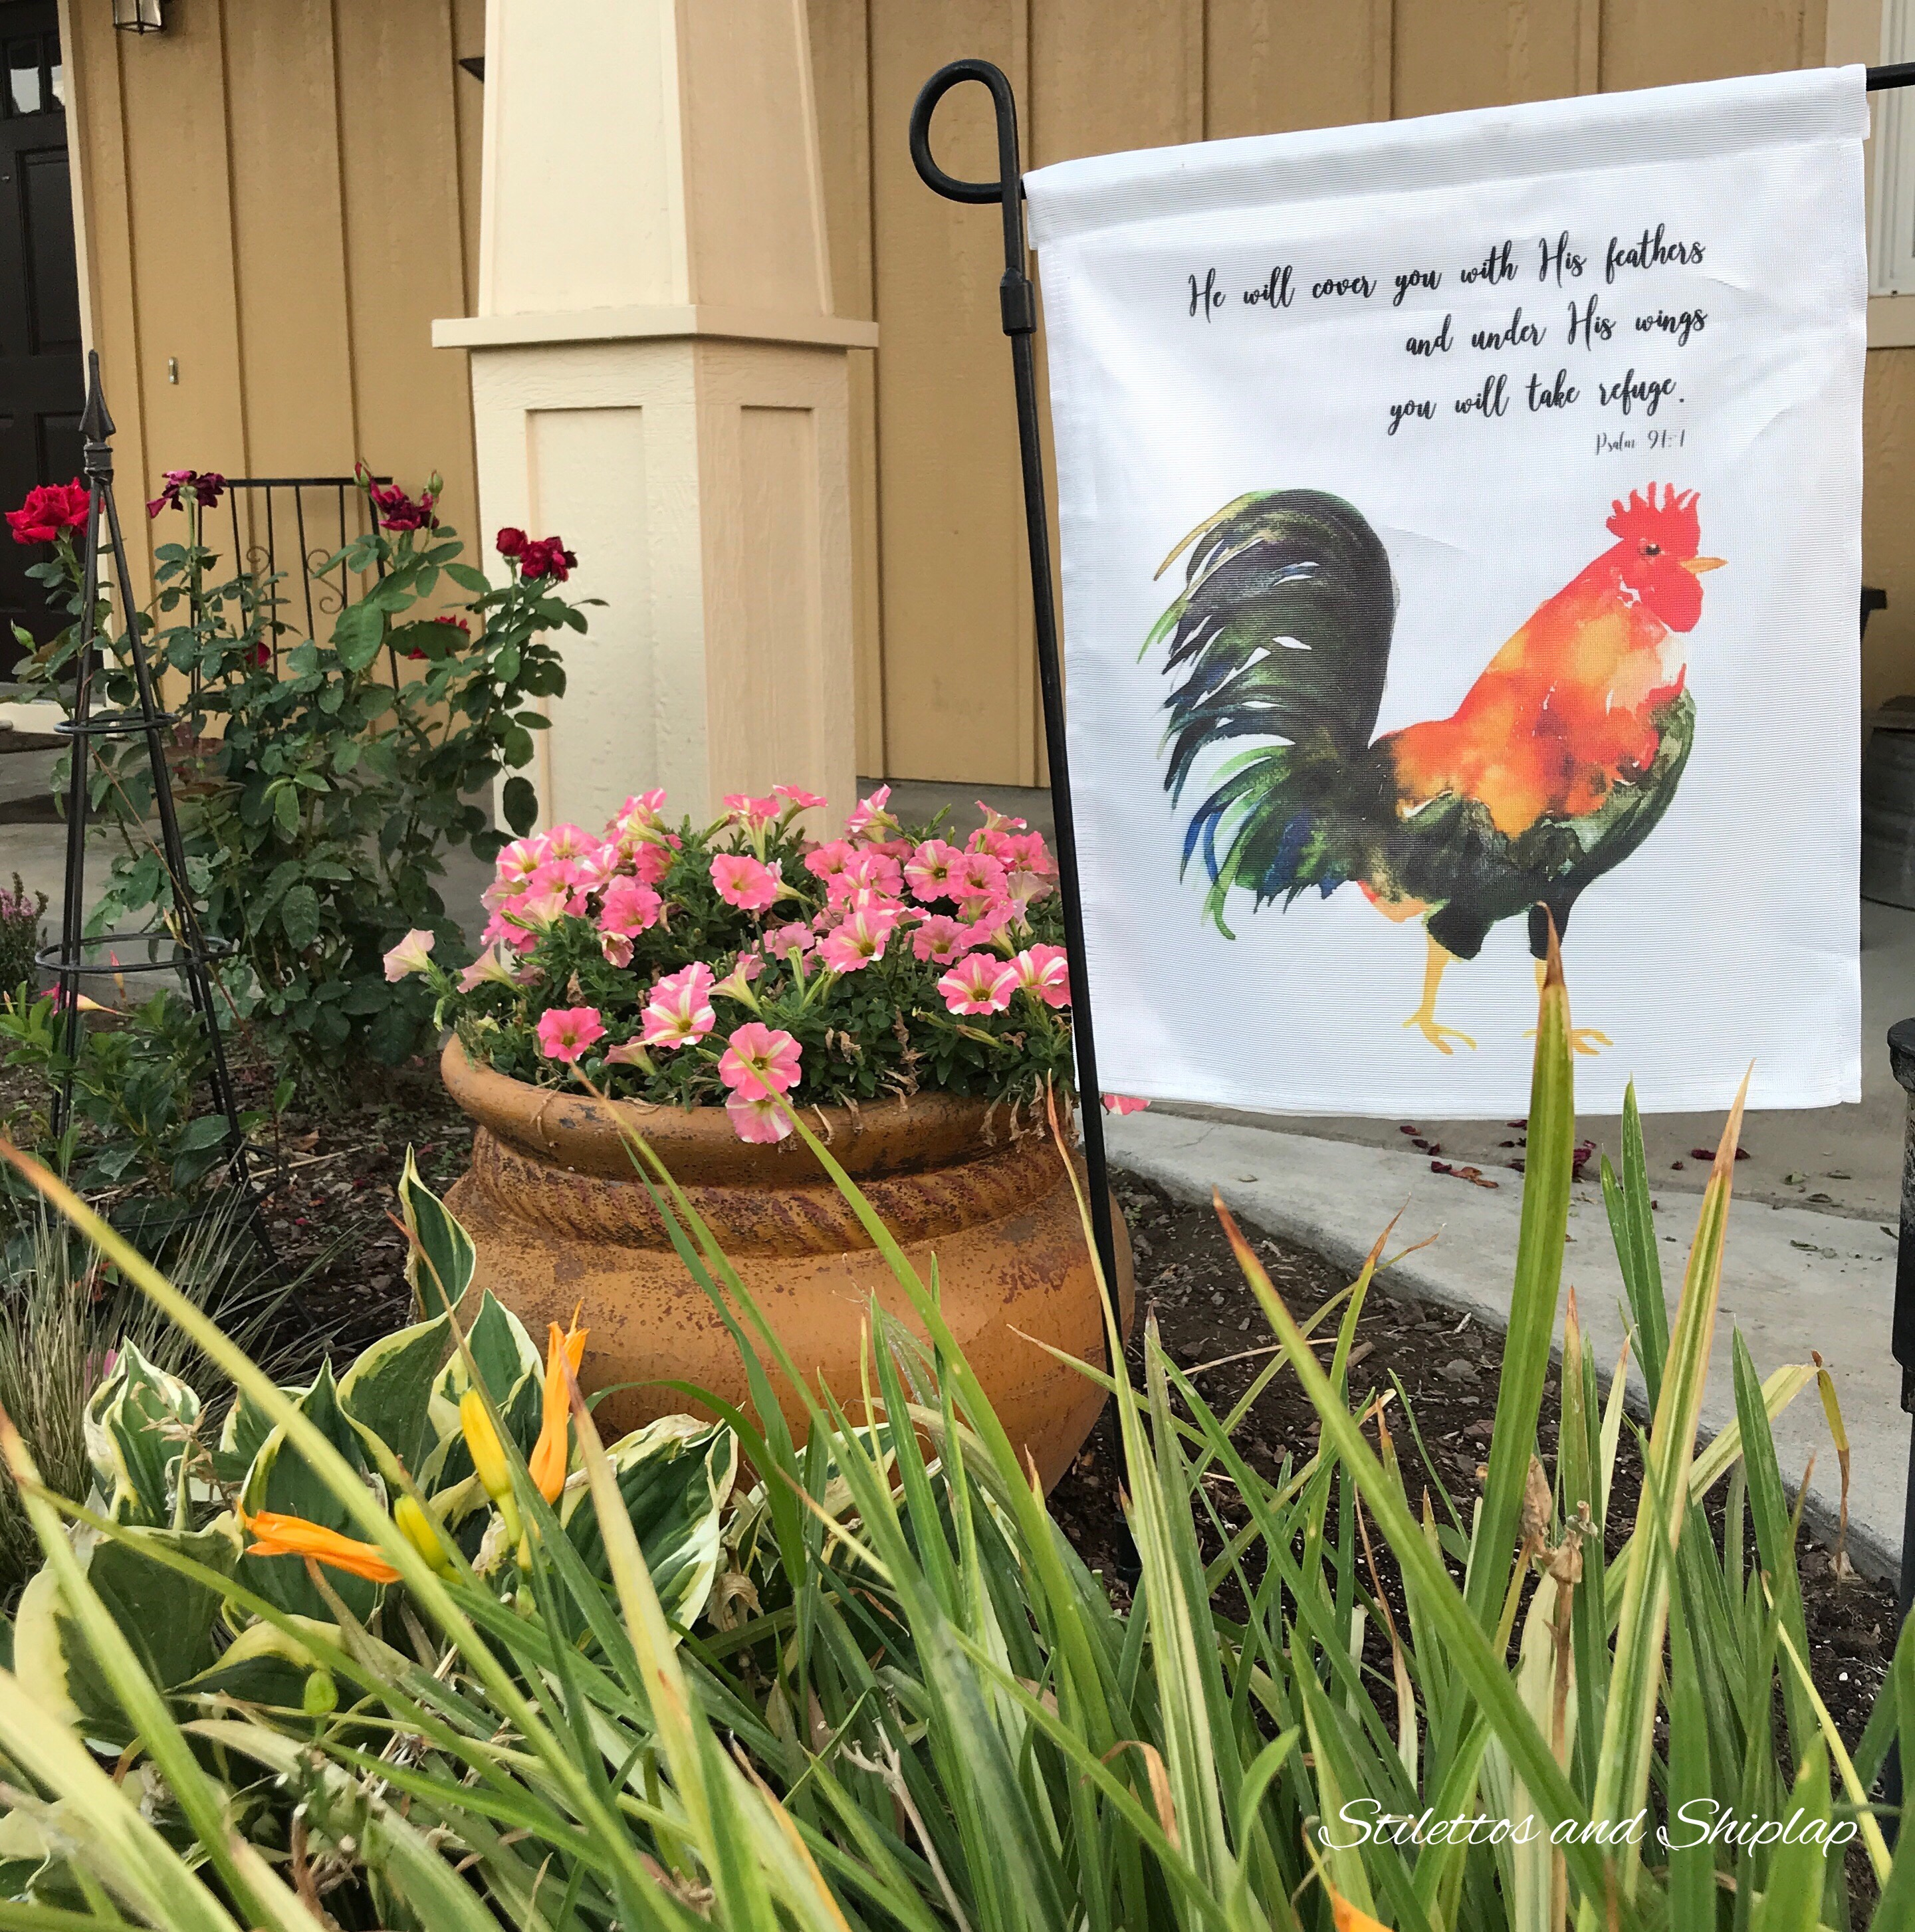 Front flowerbed and garden flag